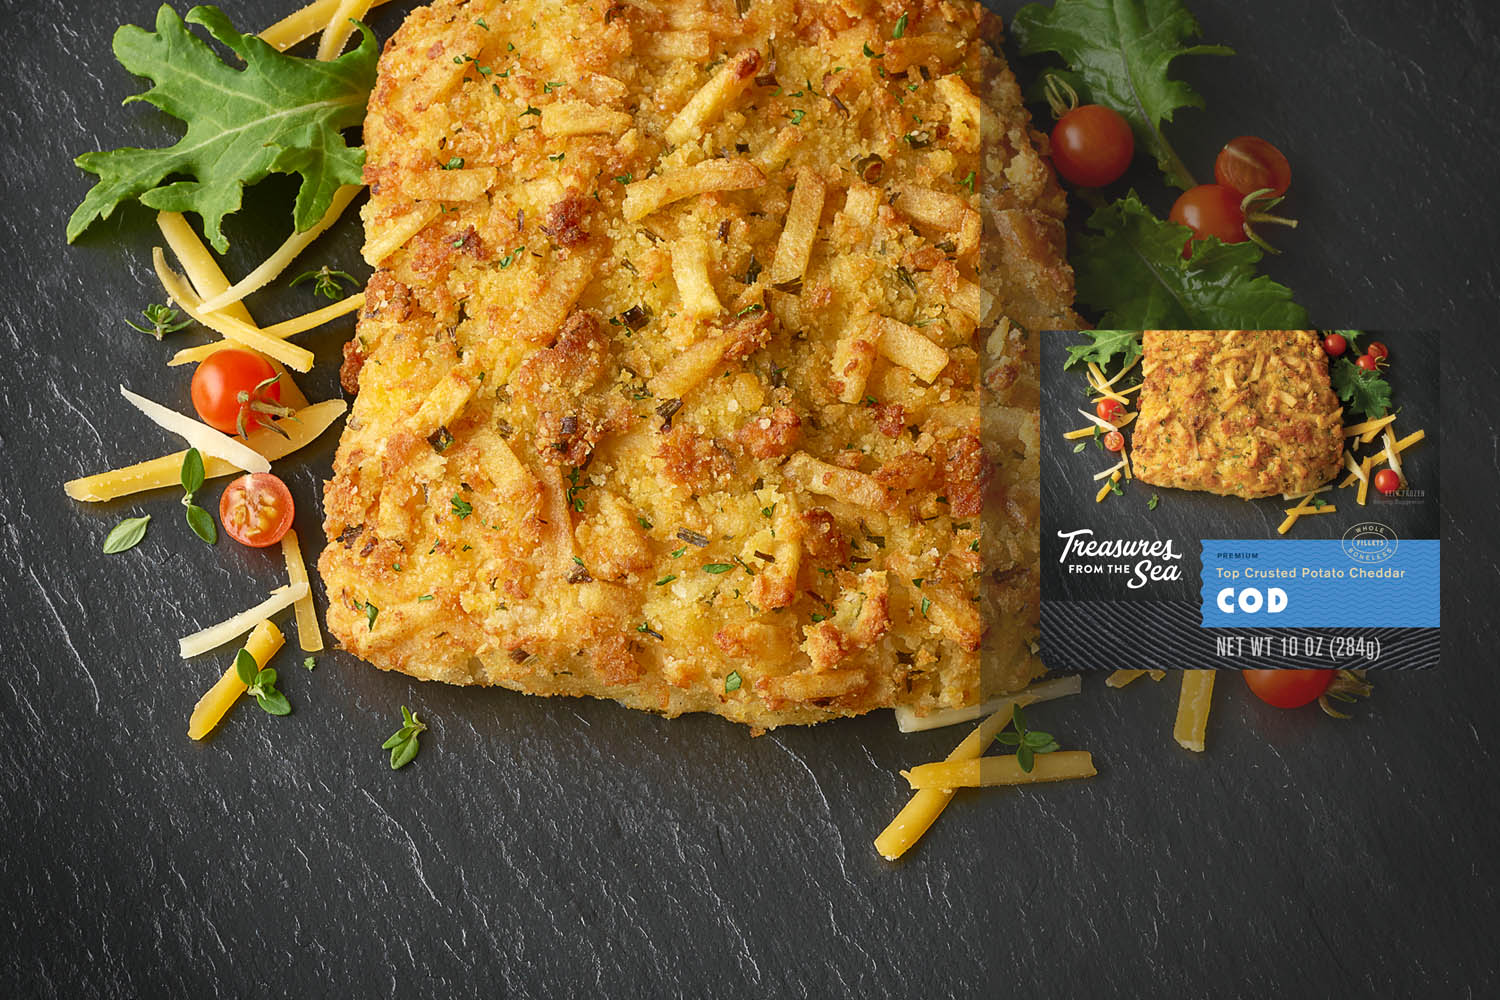 TOP CRUSTED POTATO CHEDDAR COD